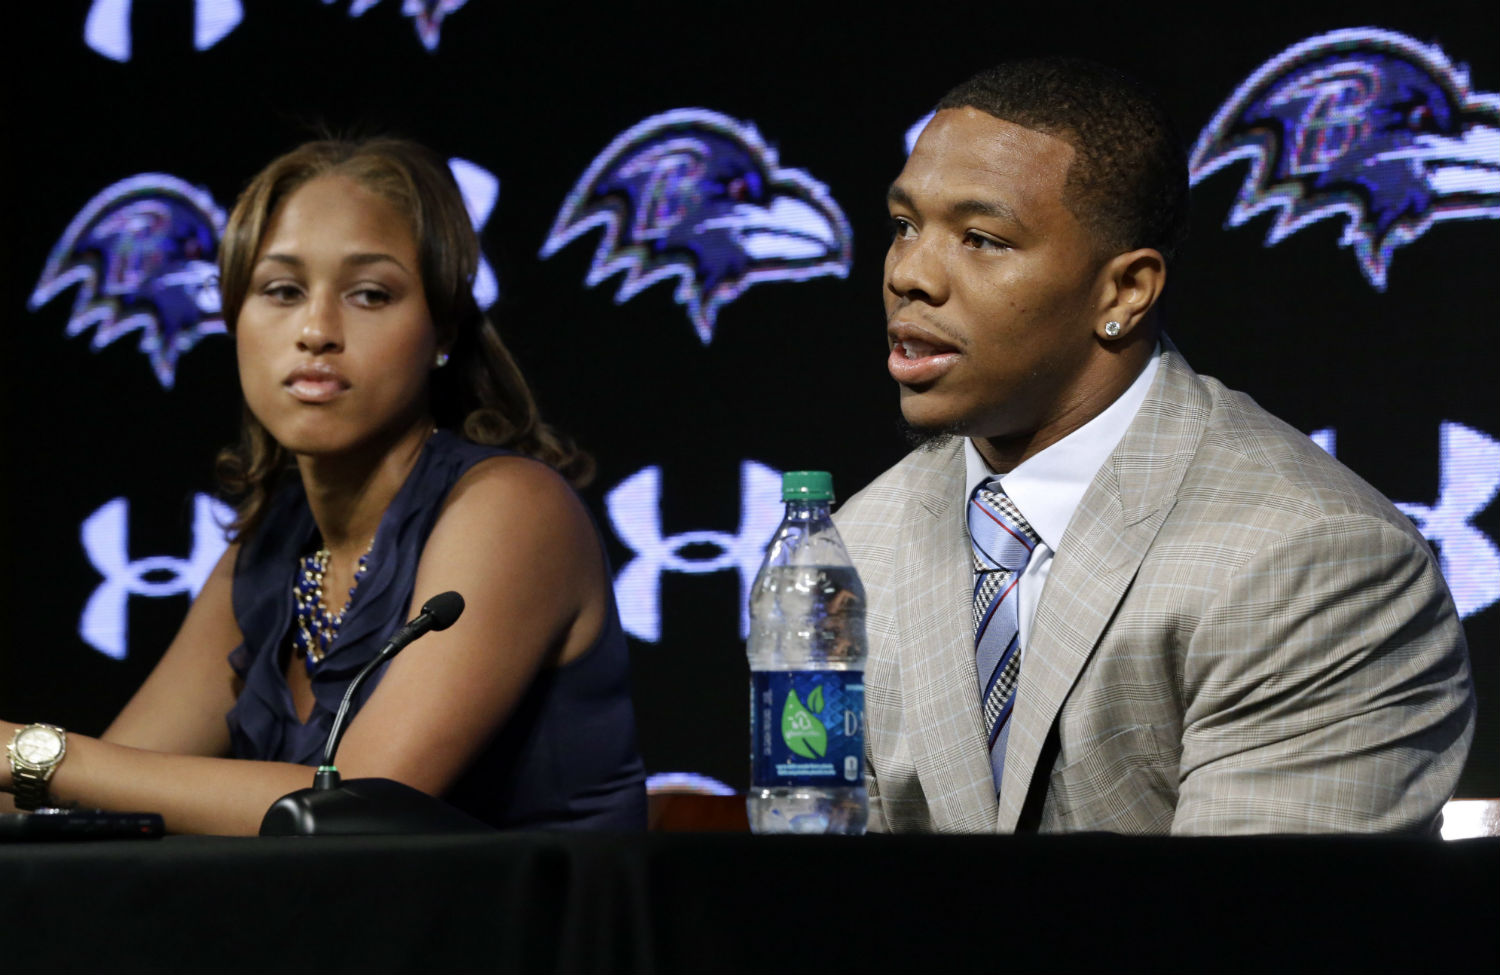 An-NFL-press-conference-is-called-after-the-Ray-Rice-assault-video-leaks